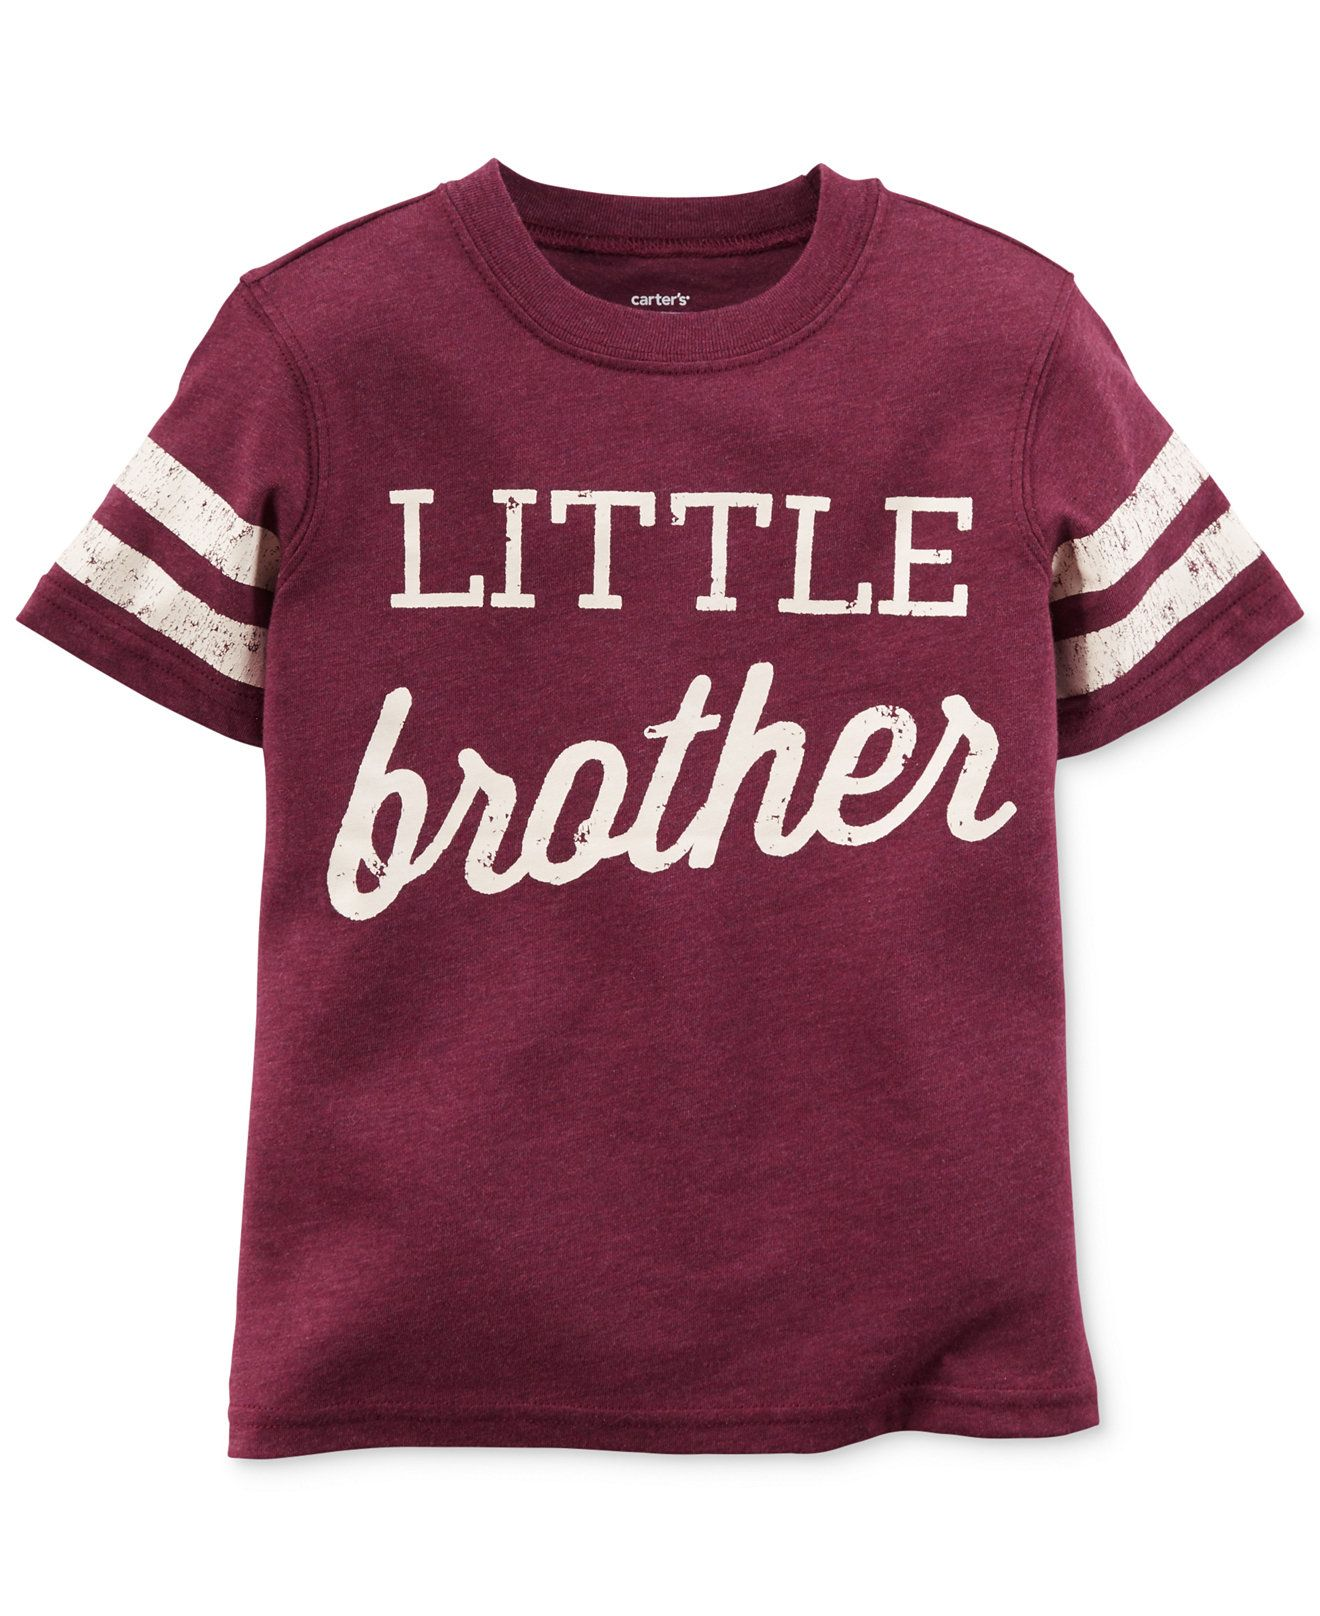 Carter's Little Boys' Little Brother Tee - Kids - Macy's